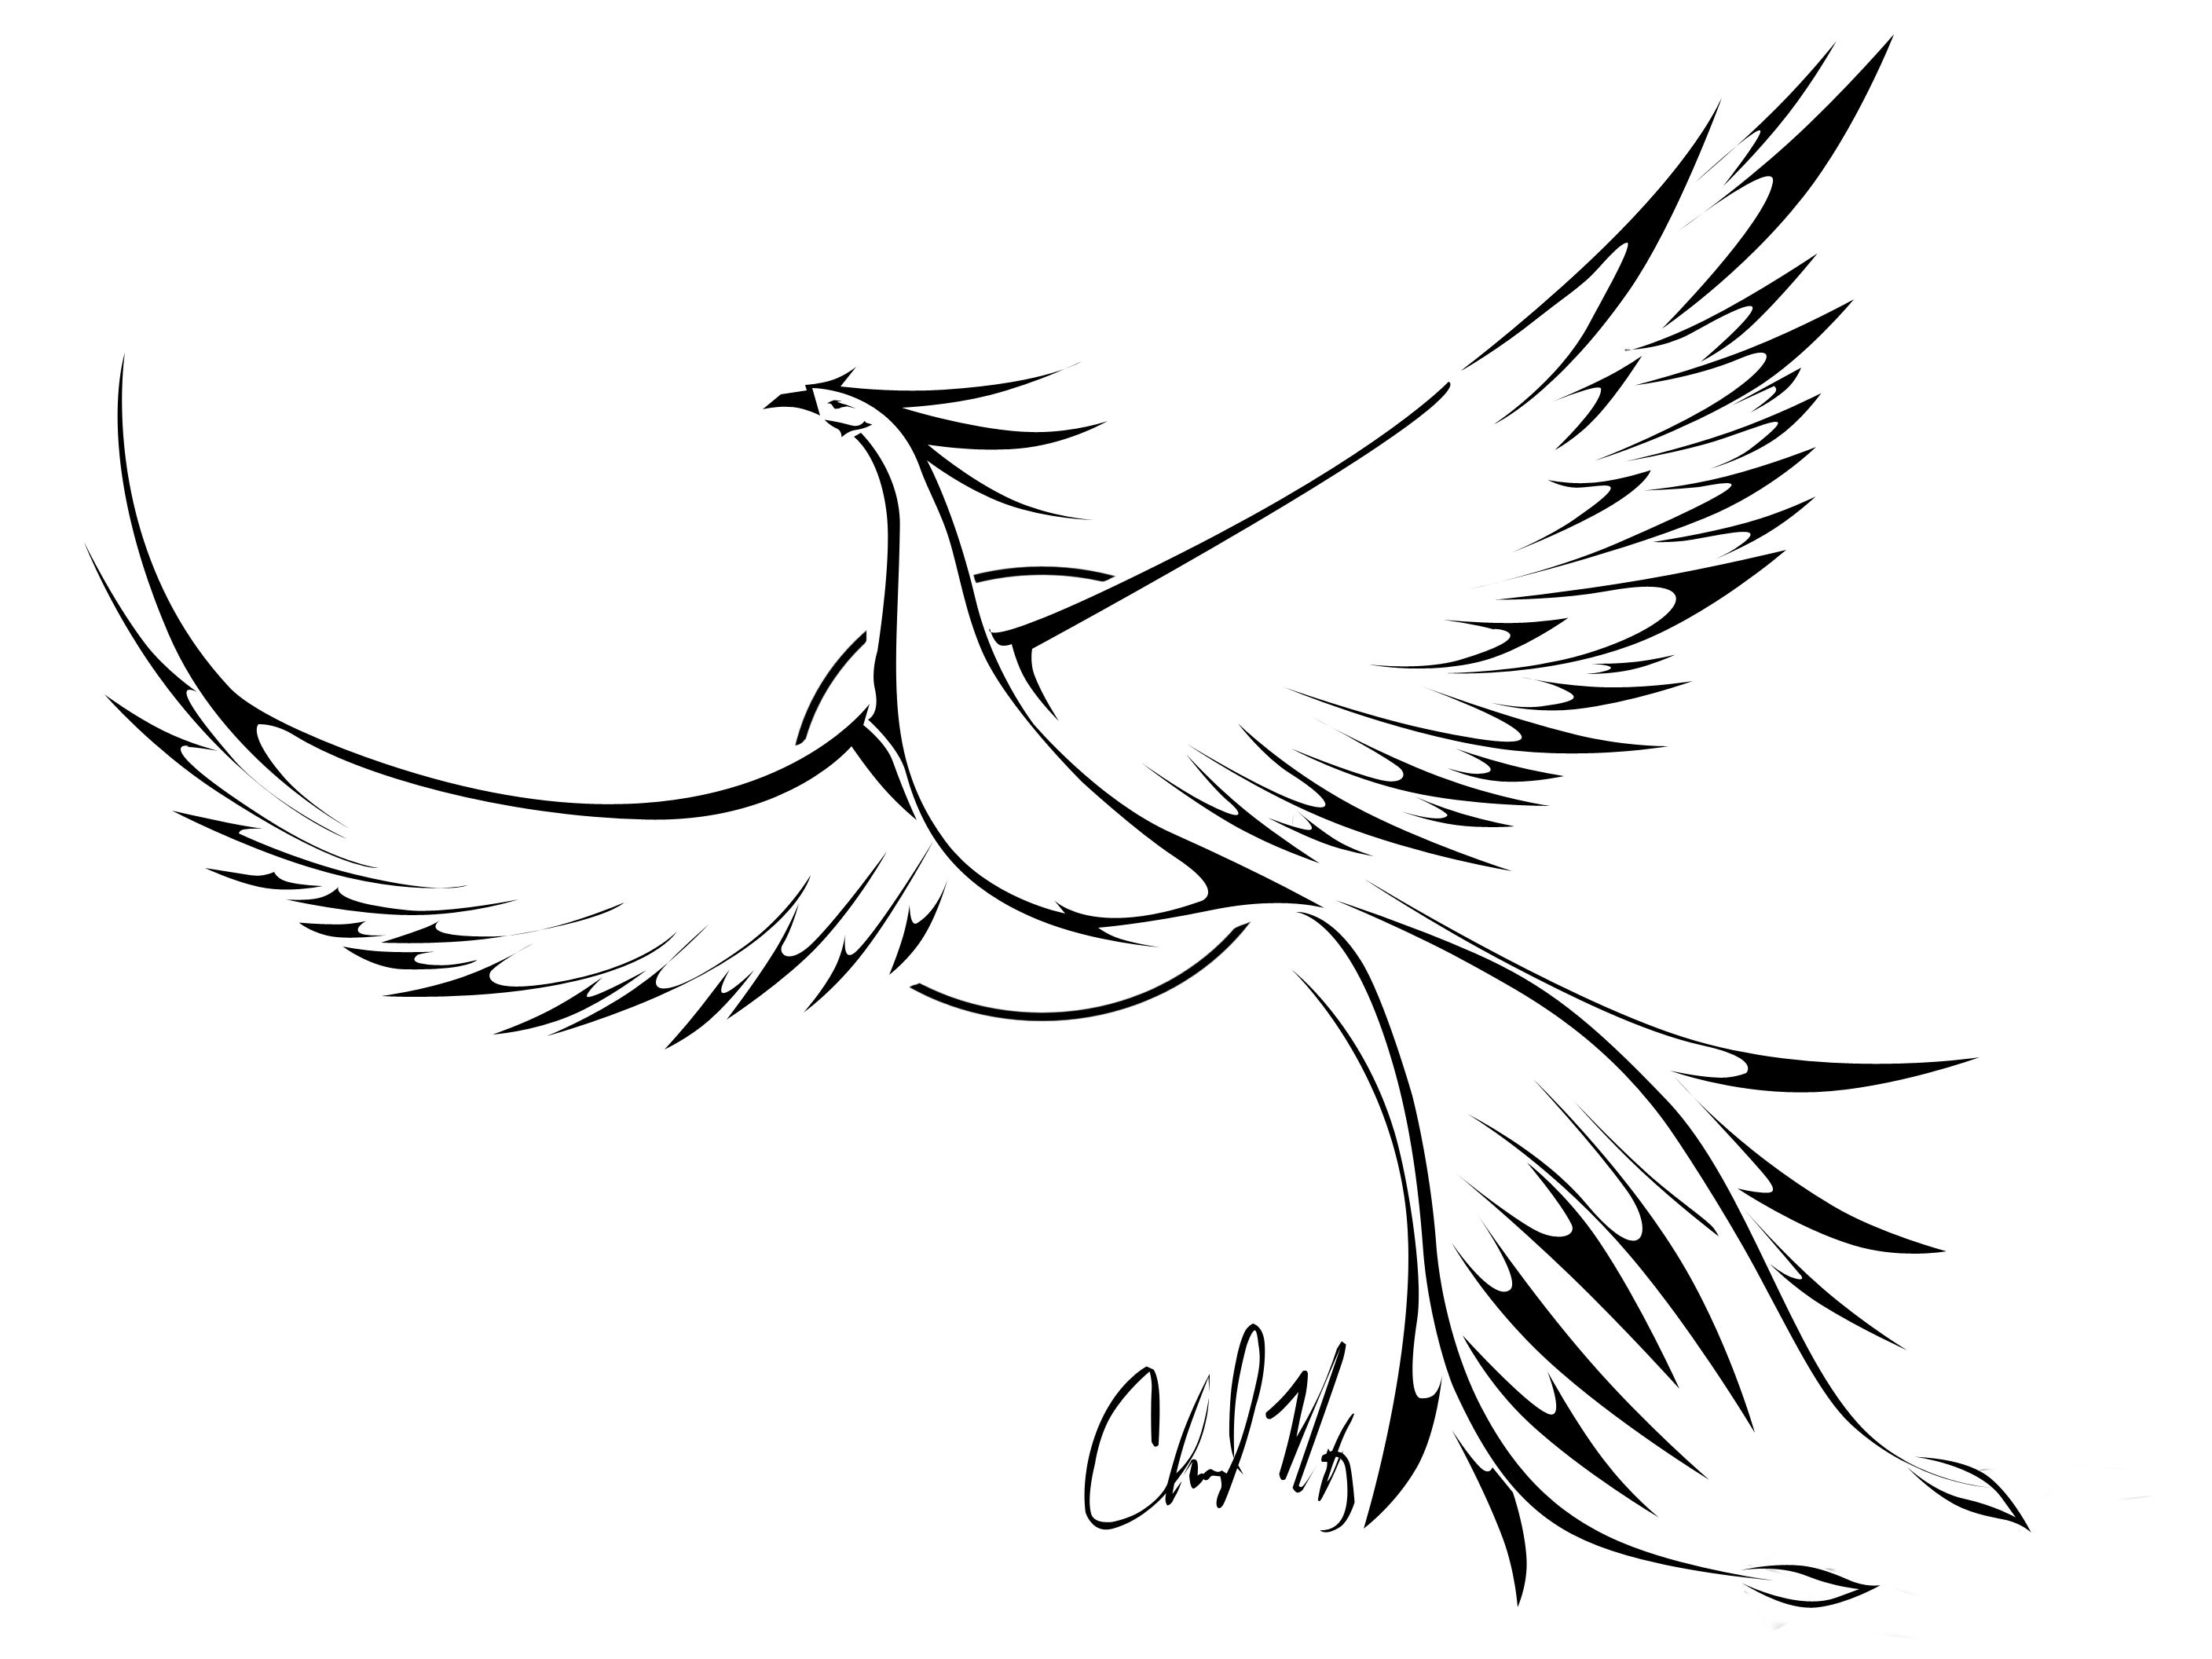 Bird tattoos designs ideas and meaning tattoos for you - Phoenix Sun Tattoo By Herahkti On Deviantart Not A Dragon But Similar